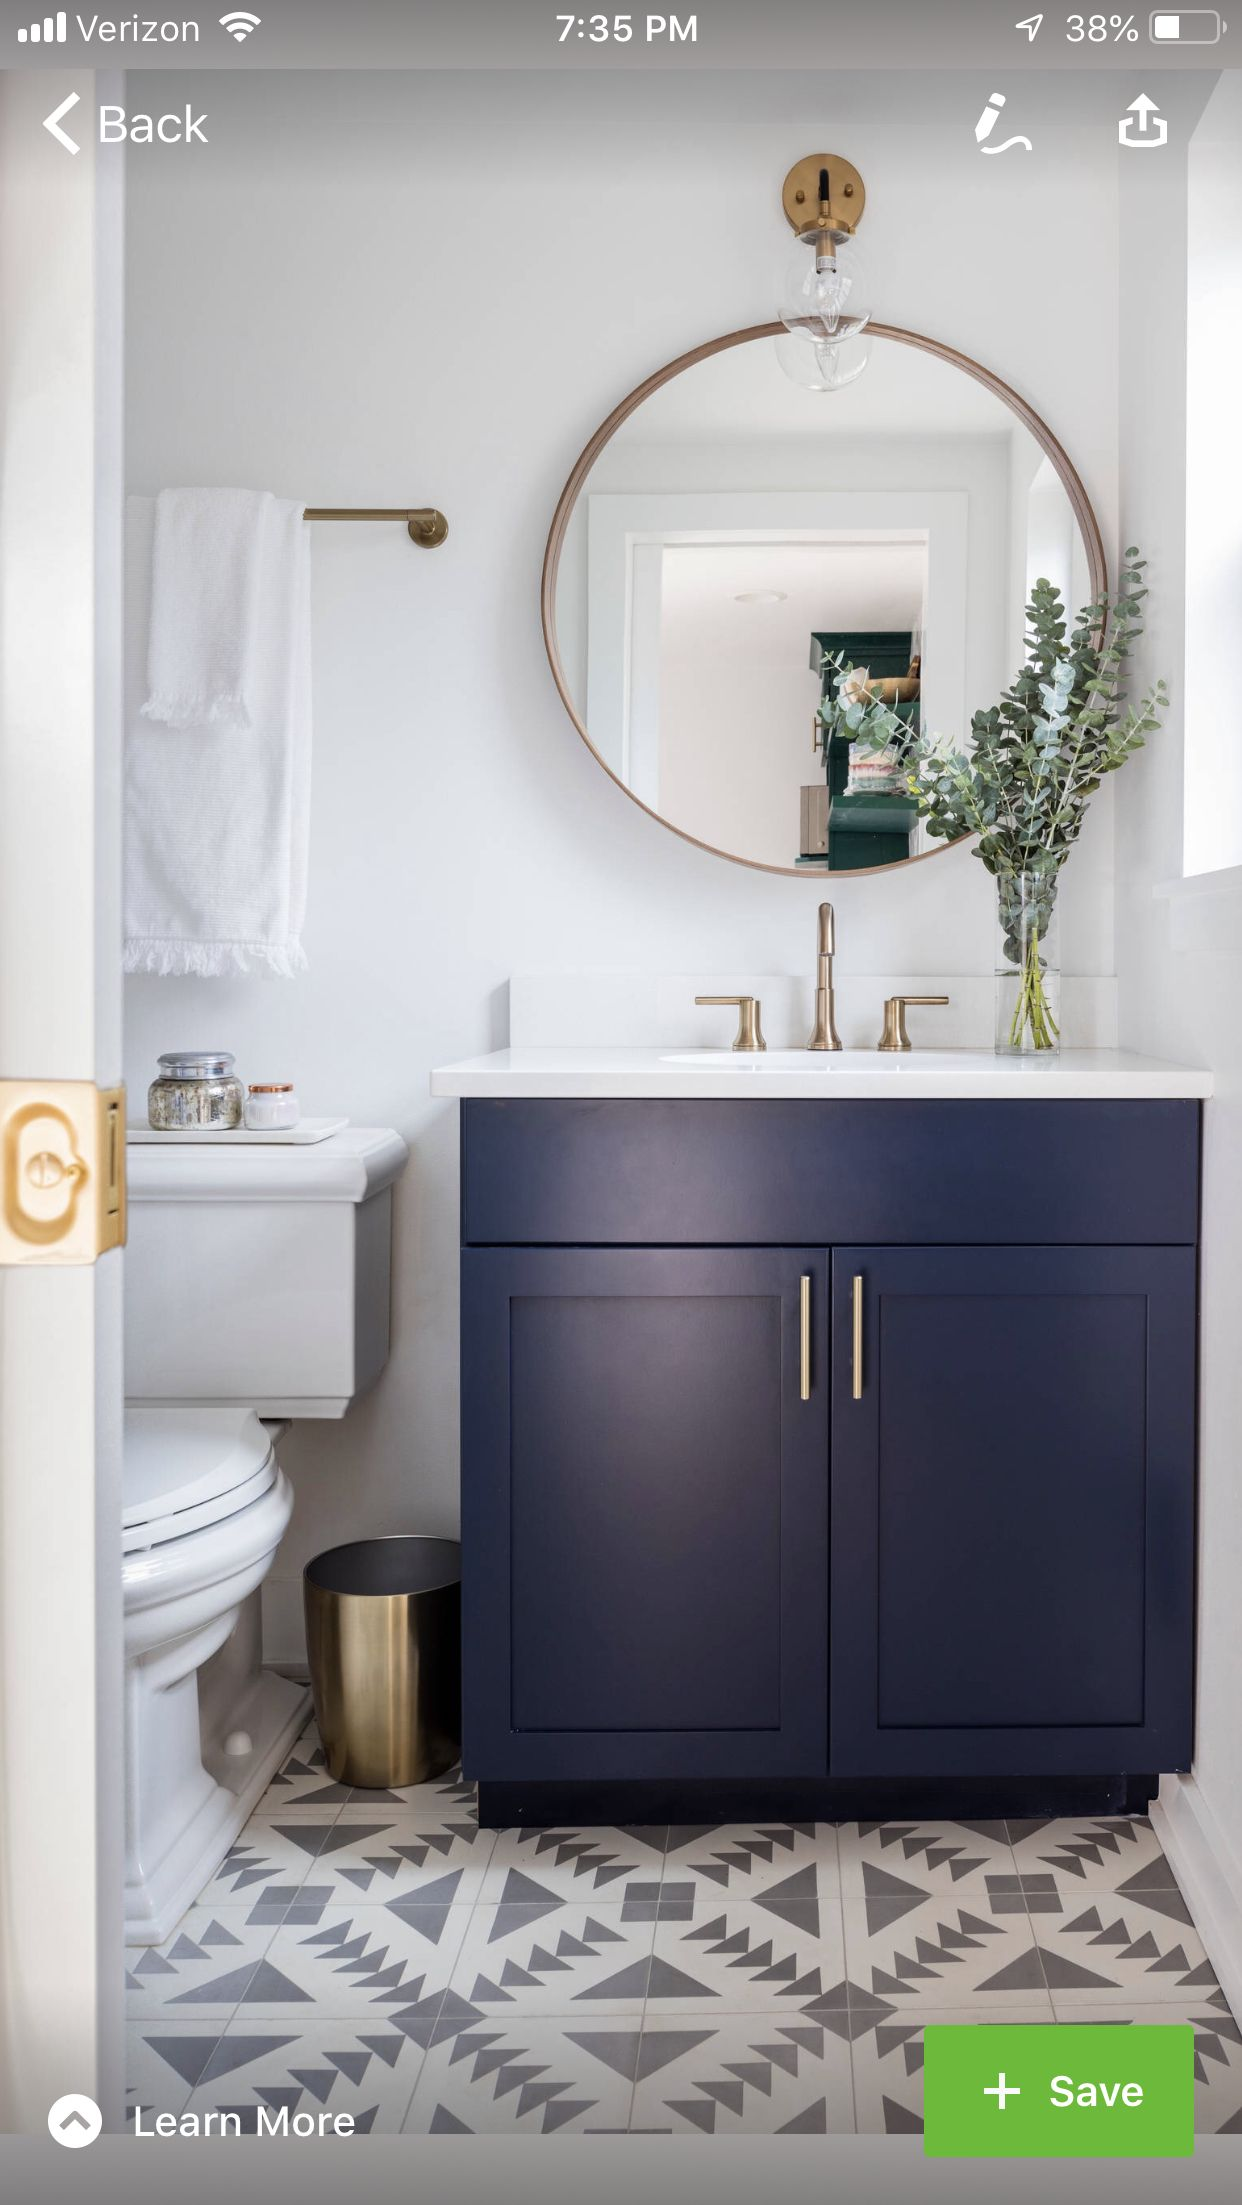 Pin By Nevada Lane On Bathroom With Images Bathroom Design